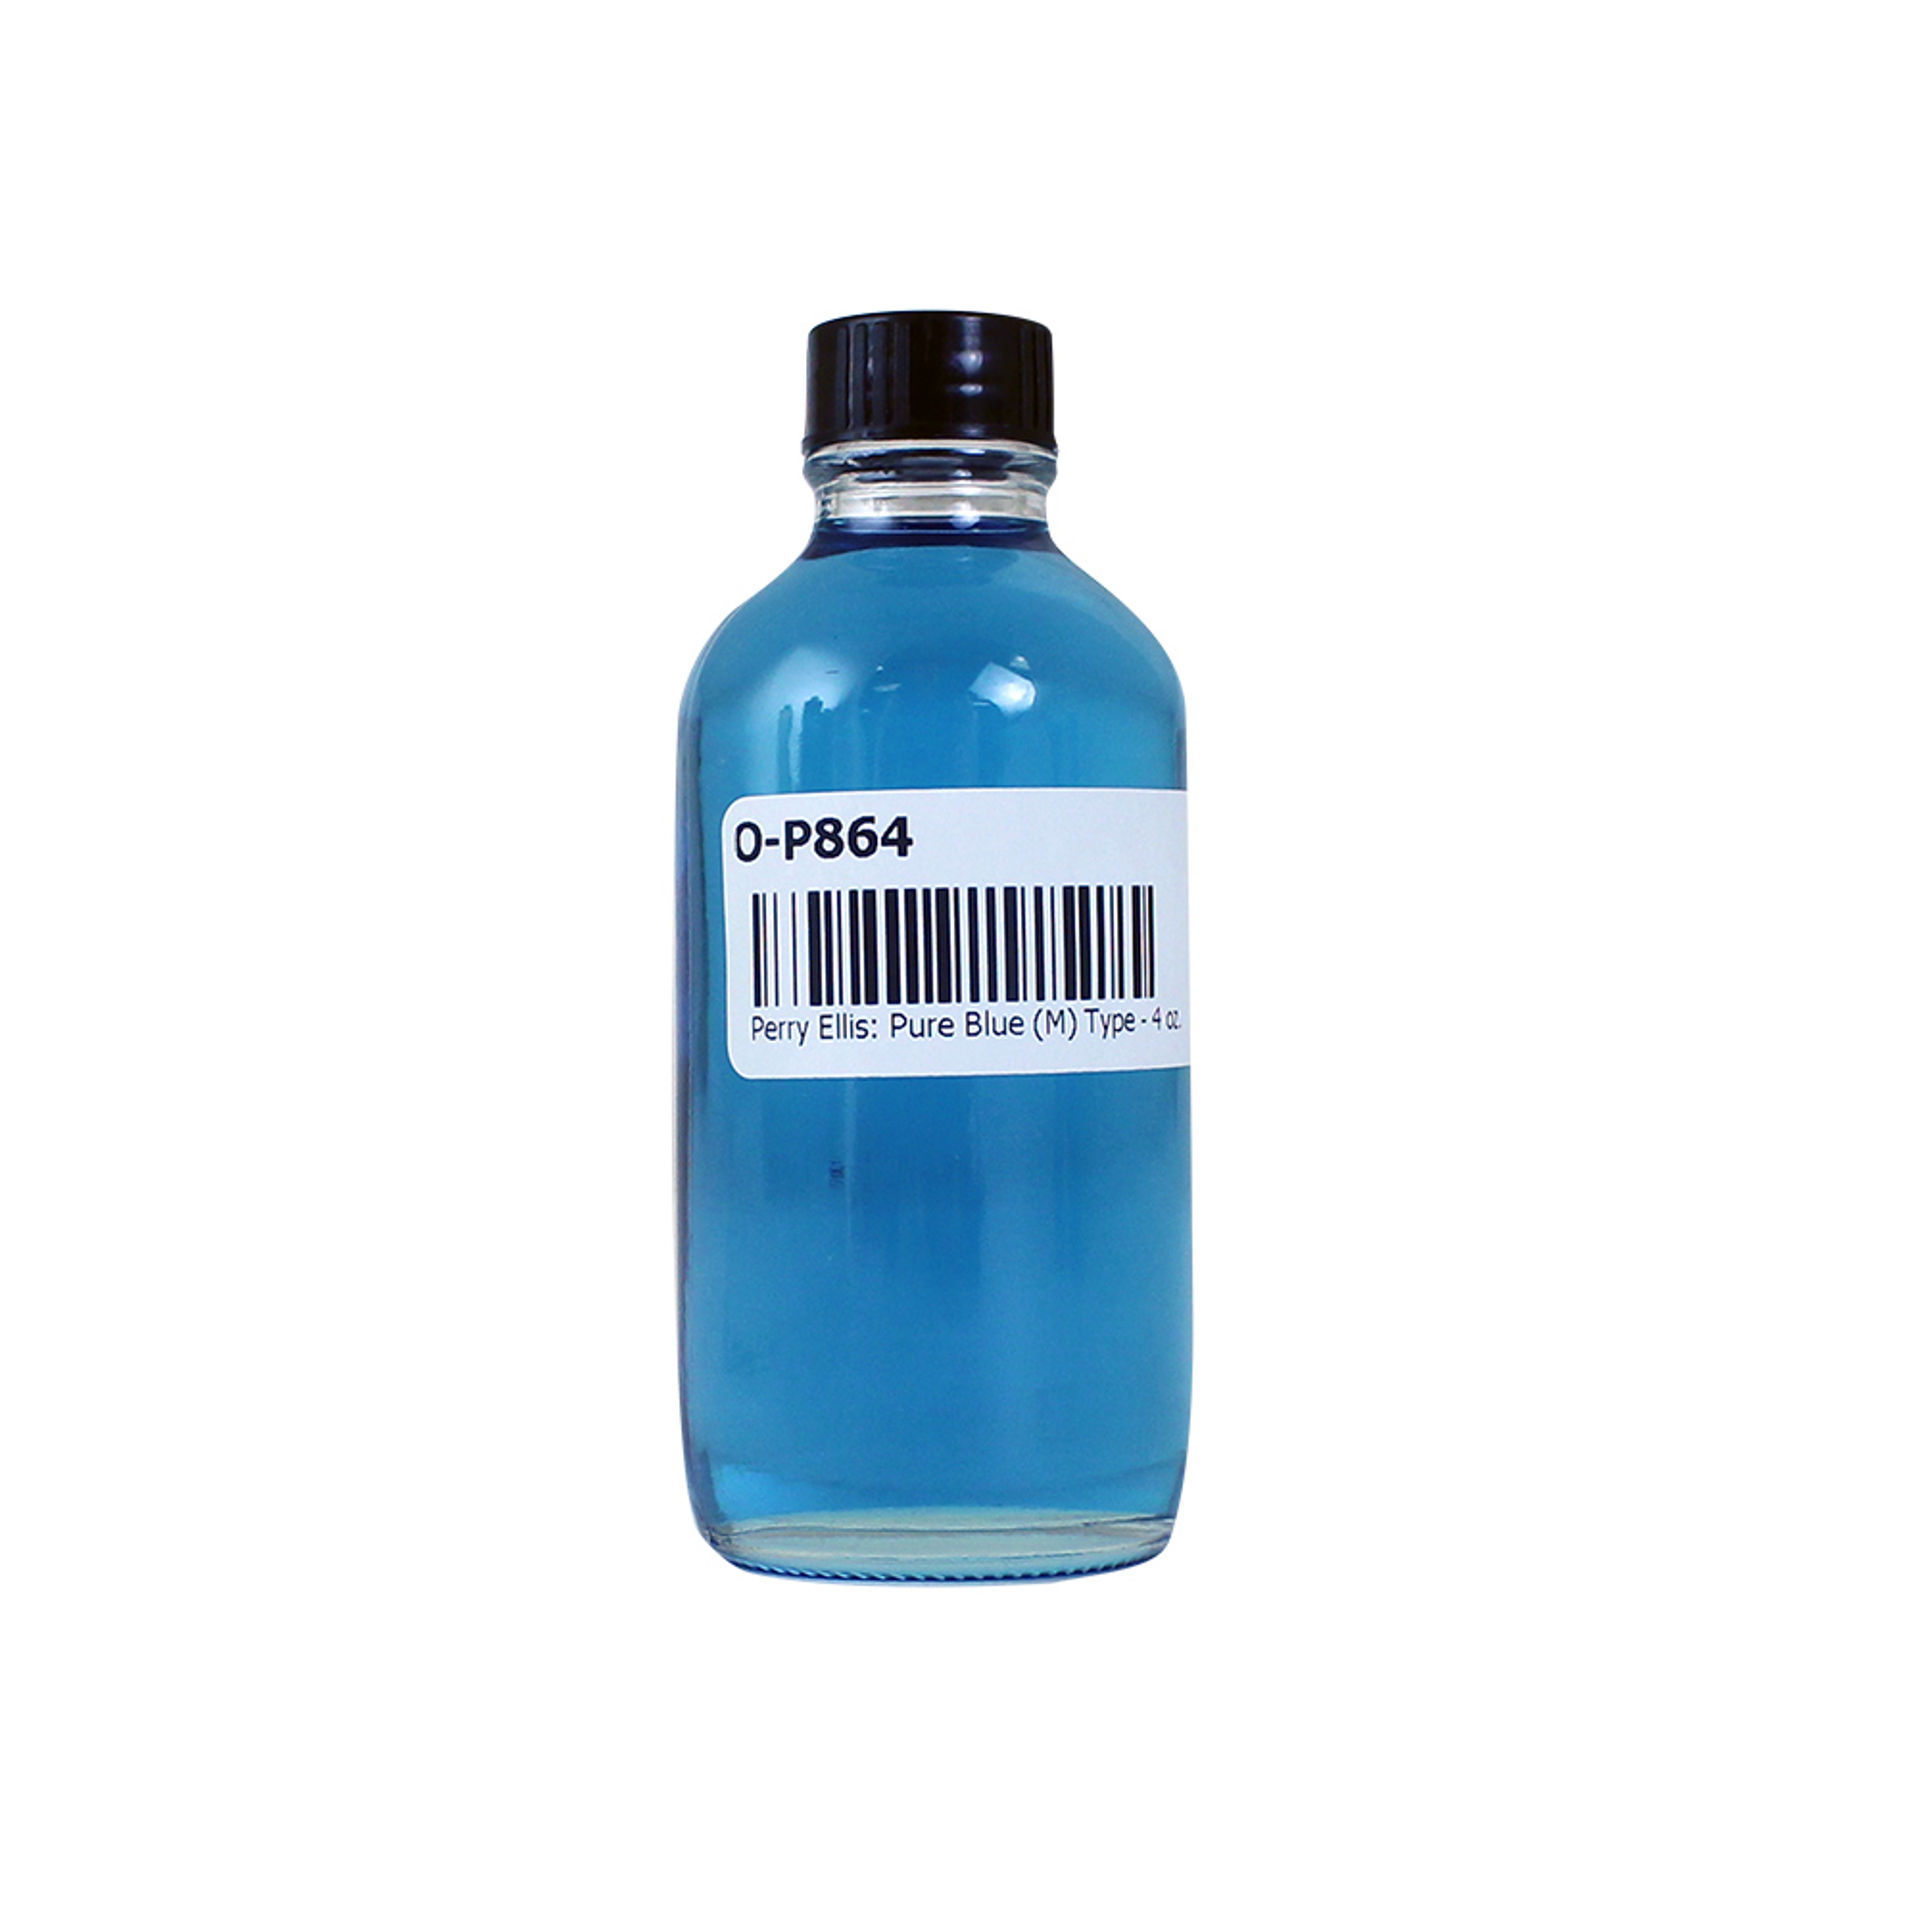 Picture of Perry Ellis: Pure Blue (M) Type - 4 oz.